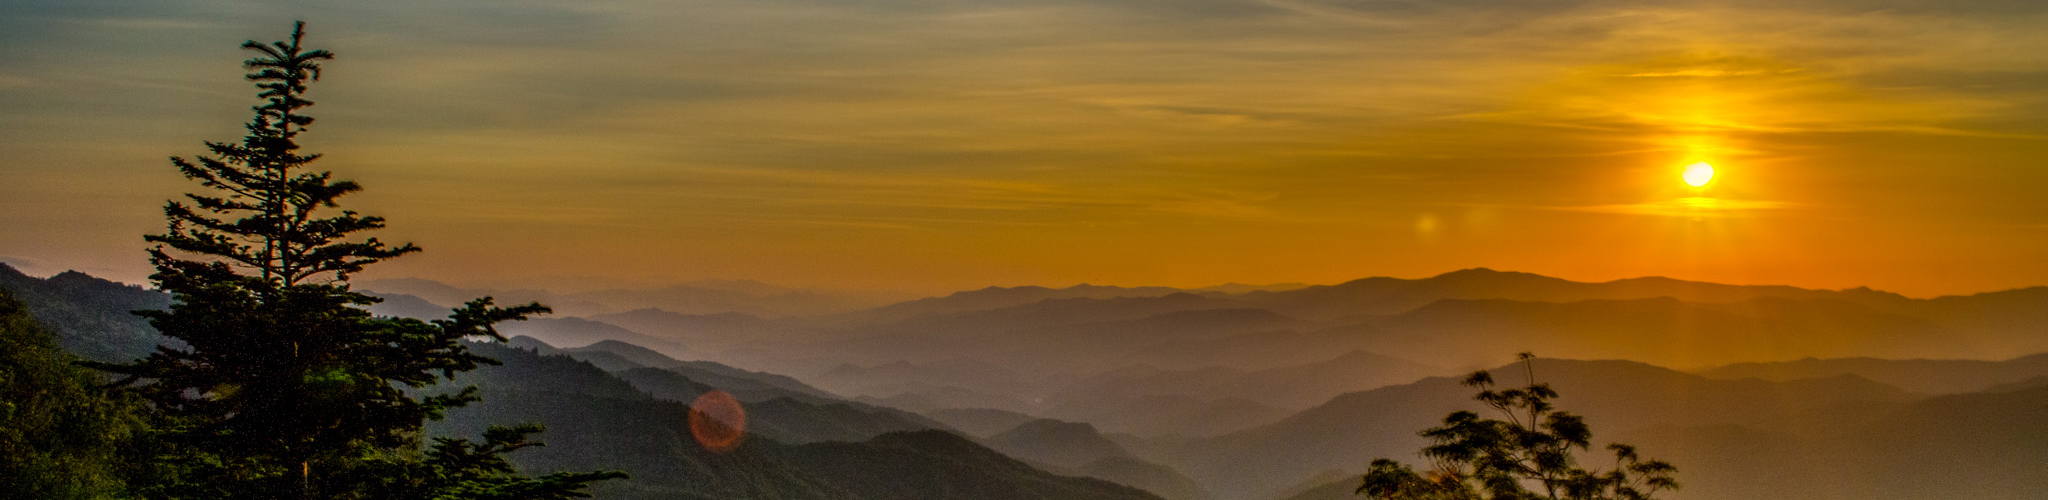 <p>Fog fills the valleys as the sun sets in the Smoky Mountains Available at: Fine Art America</p>